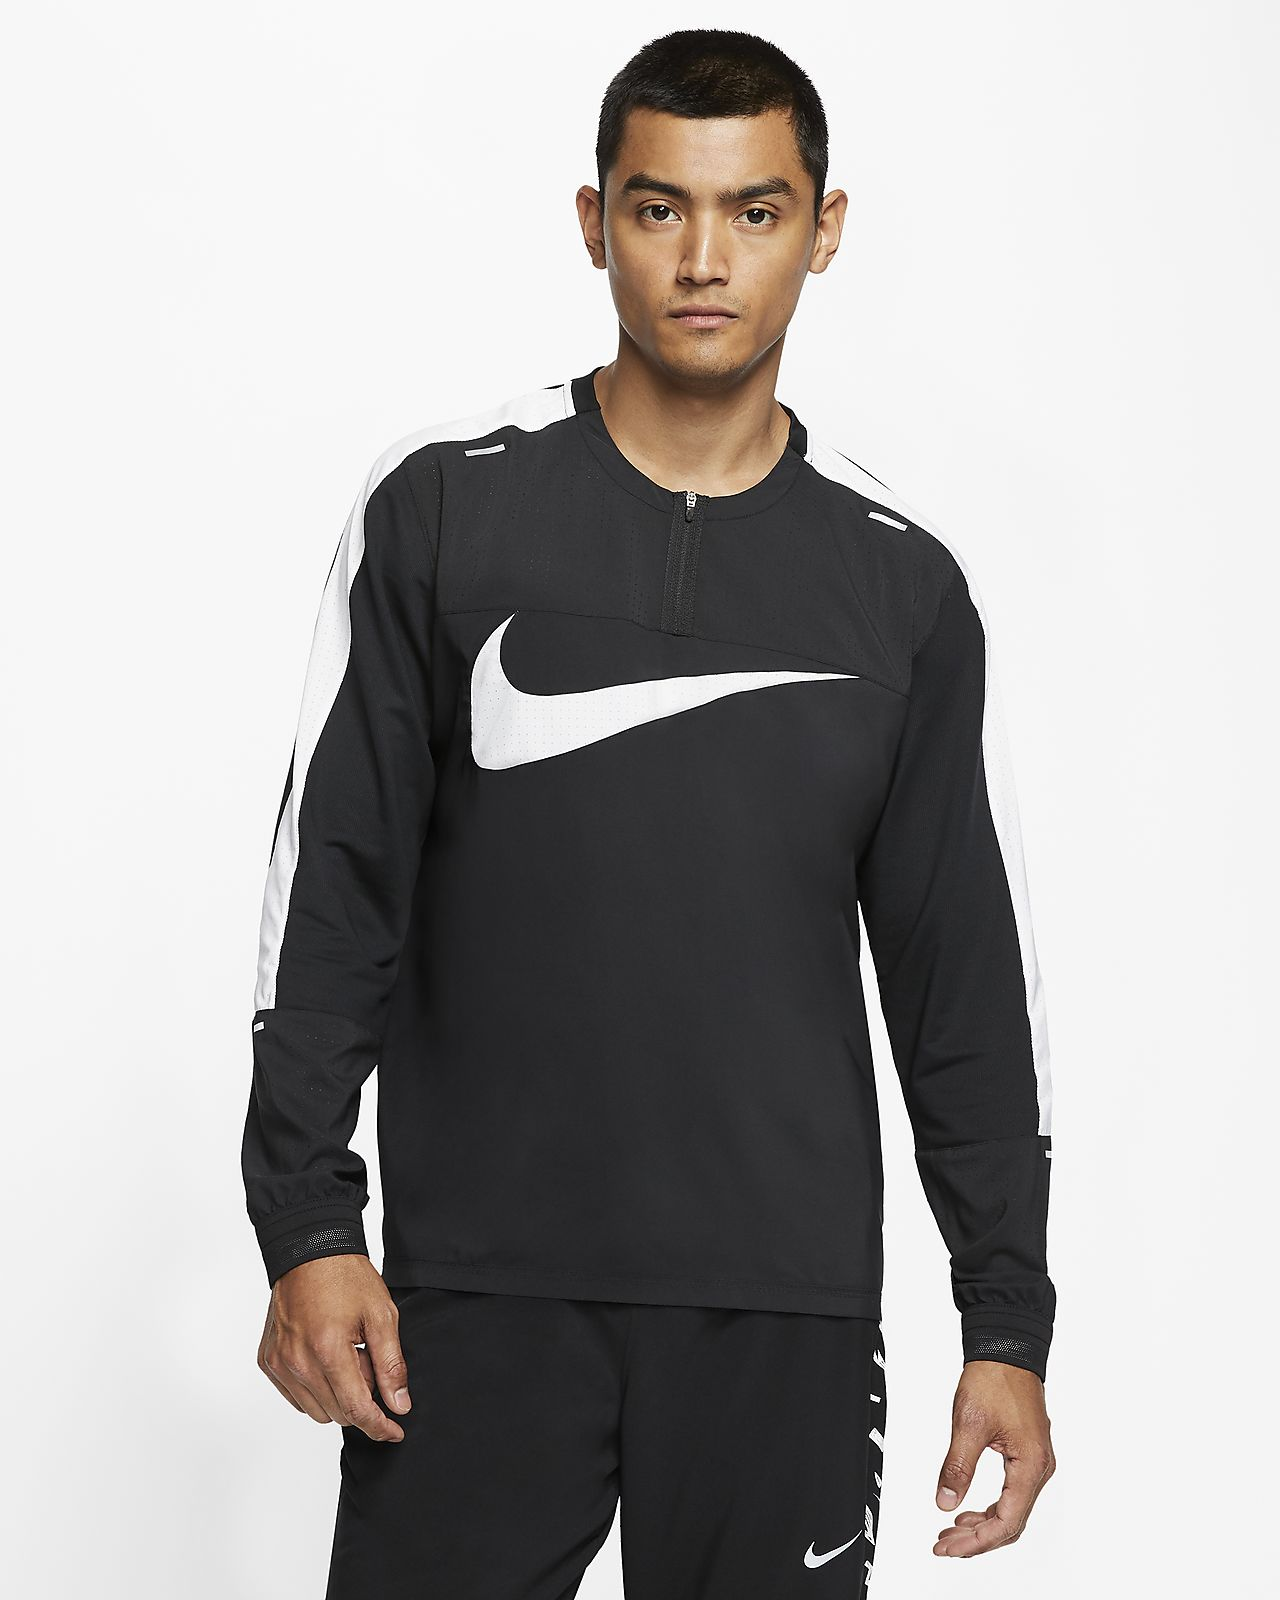 Nike Wild Run Men's 1/4-Zip Running Top